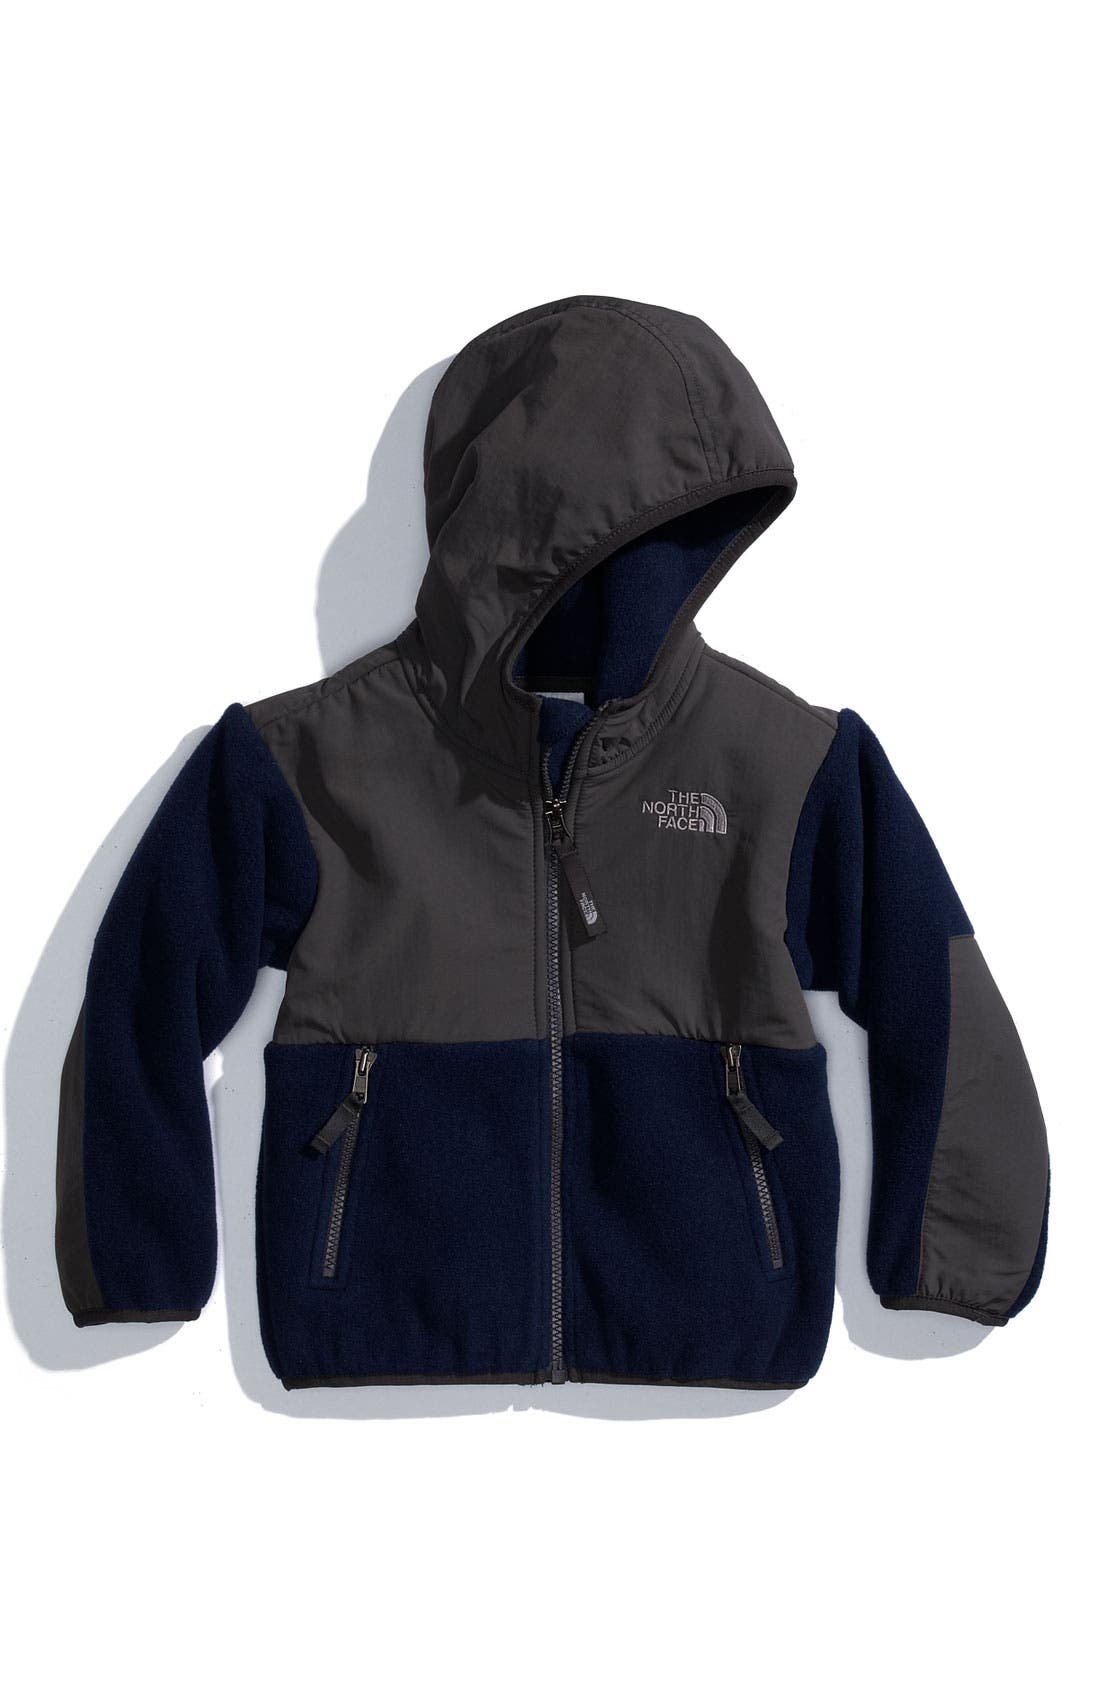 Main Image - The North Face 'Denali' Hoodie (Toddler)